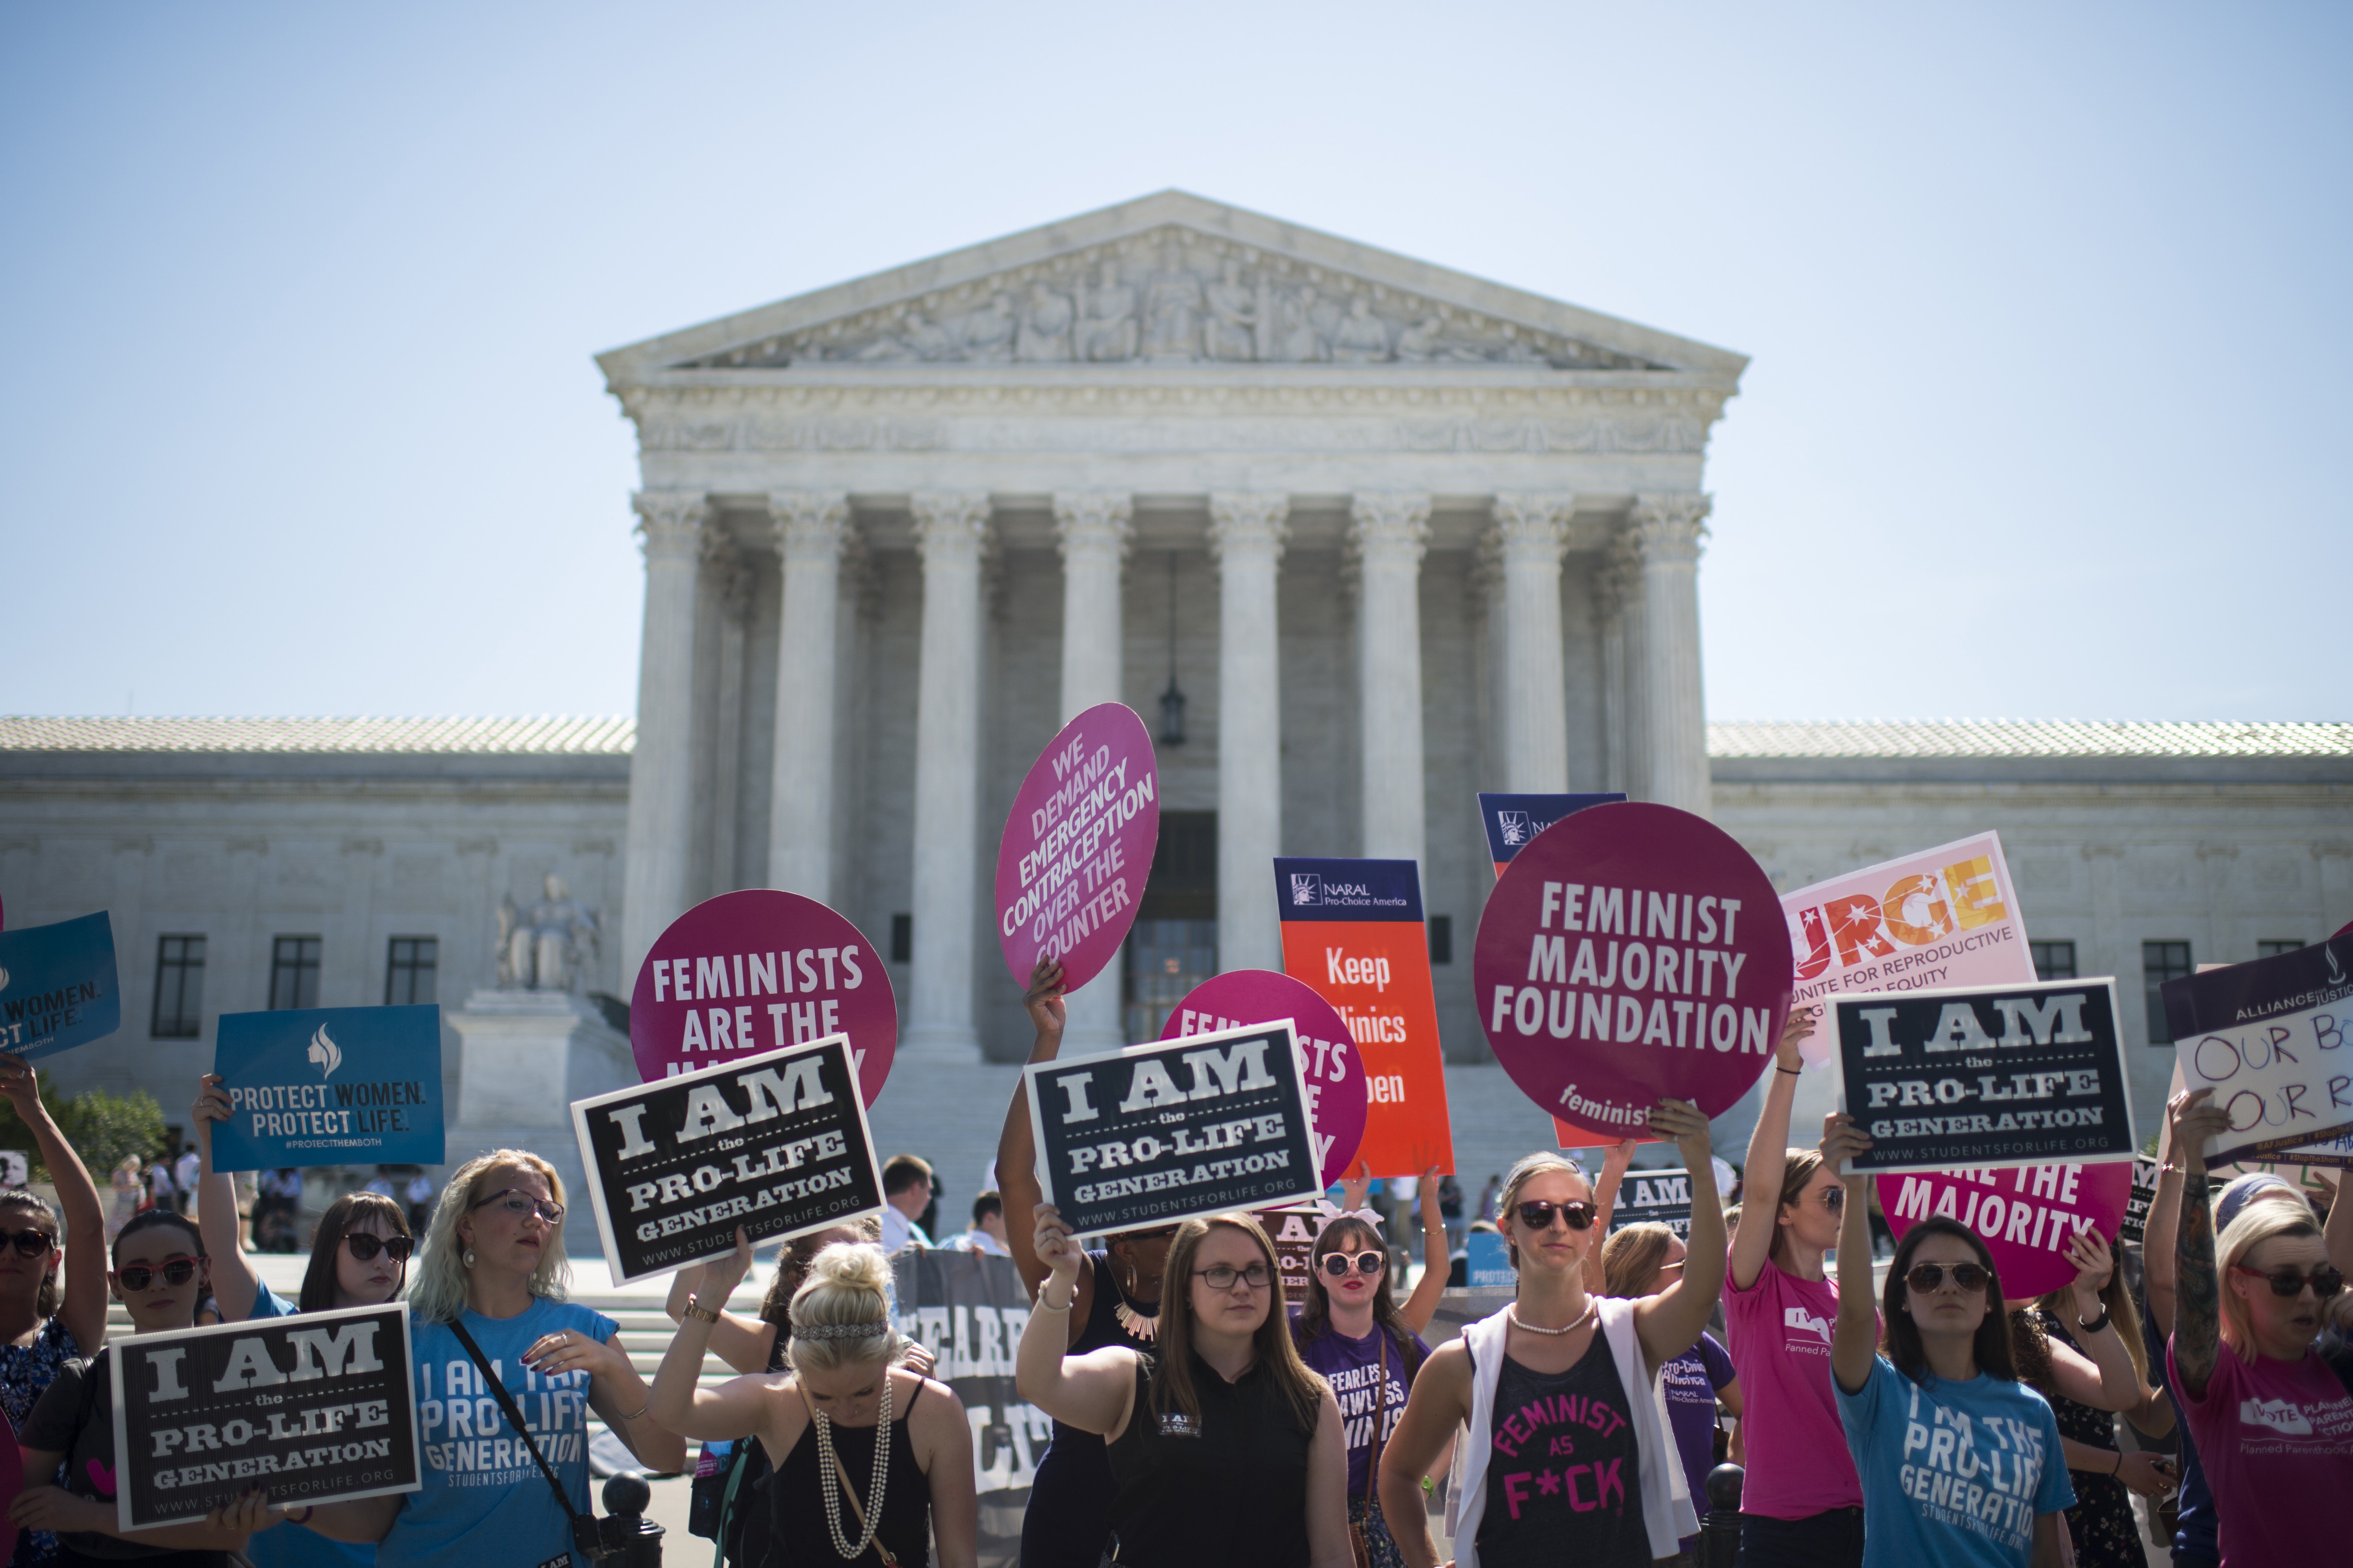 Texas judge temporarily shields clinics from anti-abortion group's lawsuits